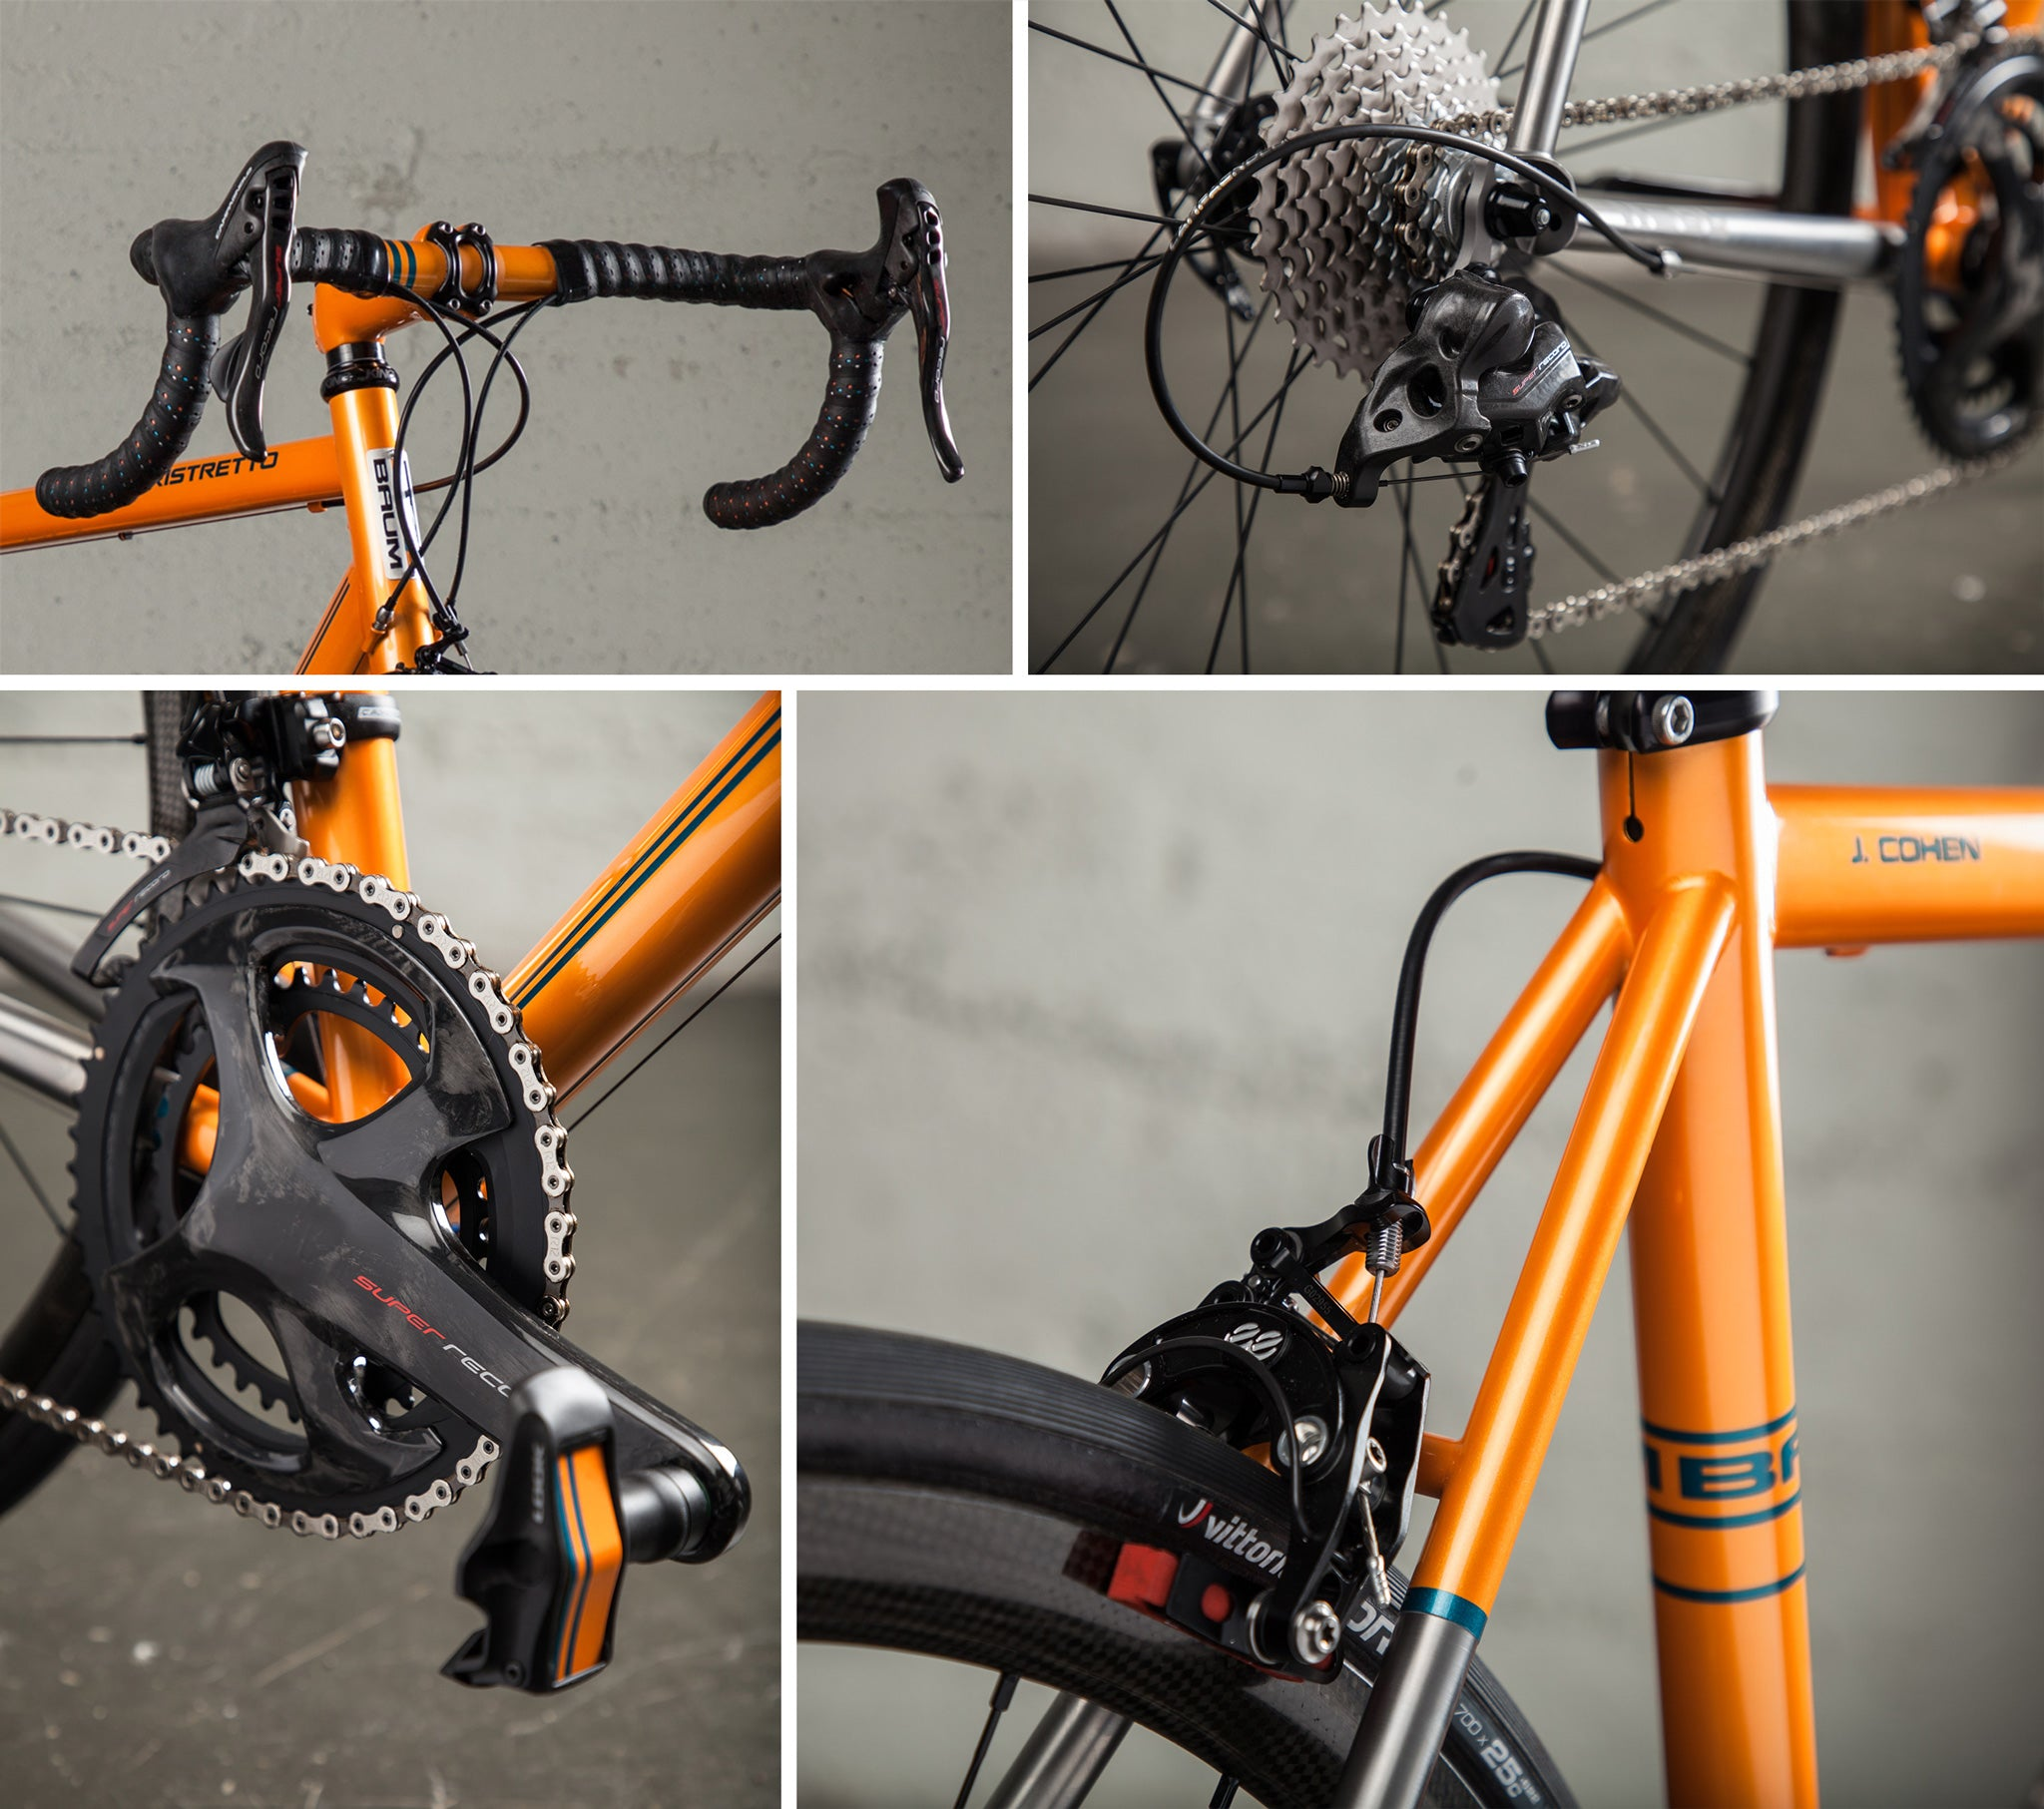 baum ristretto orange super record JC drive train